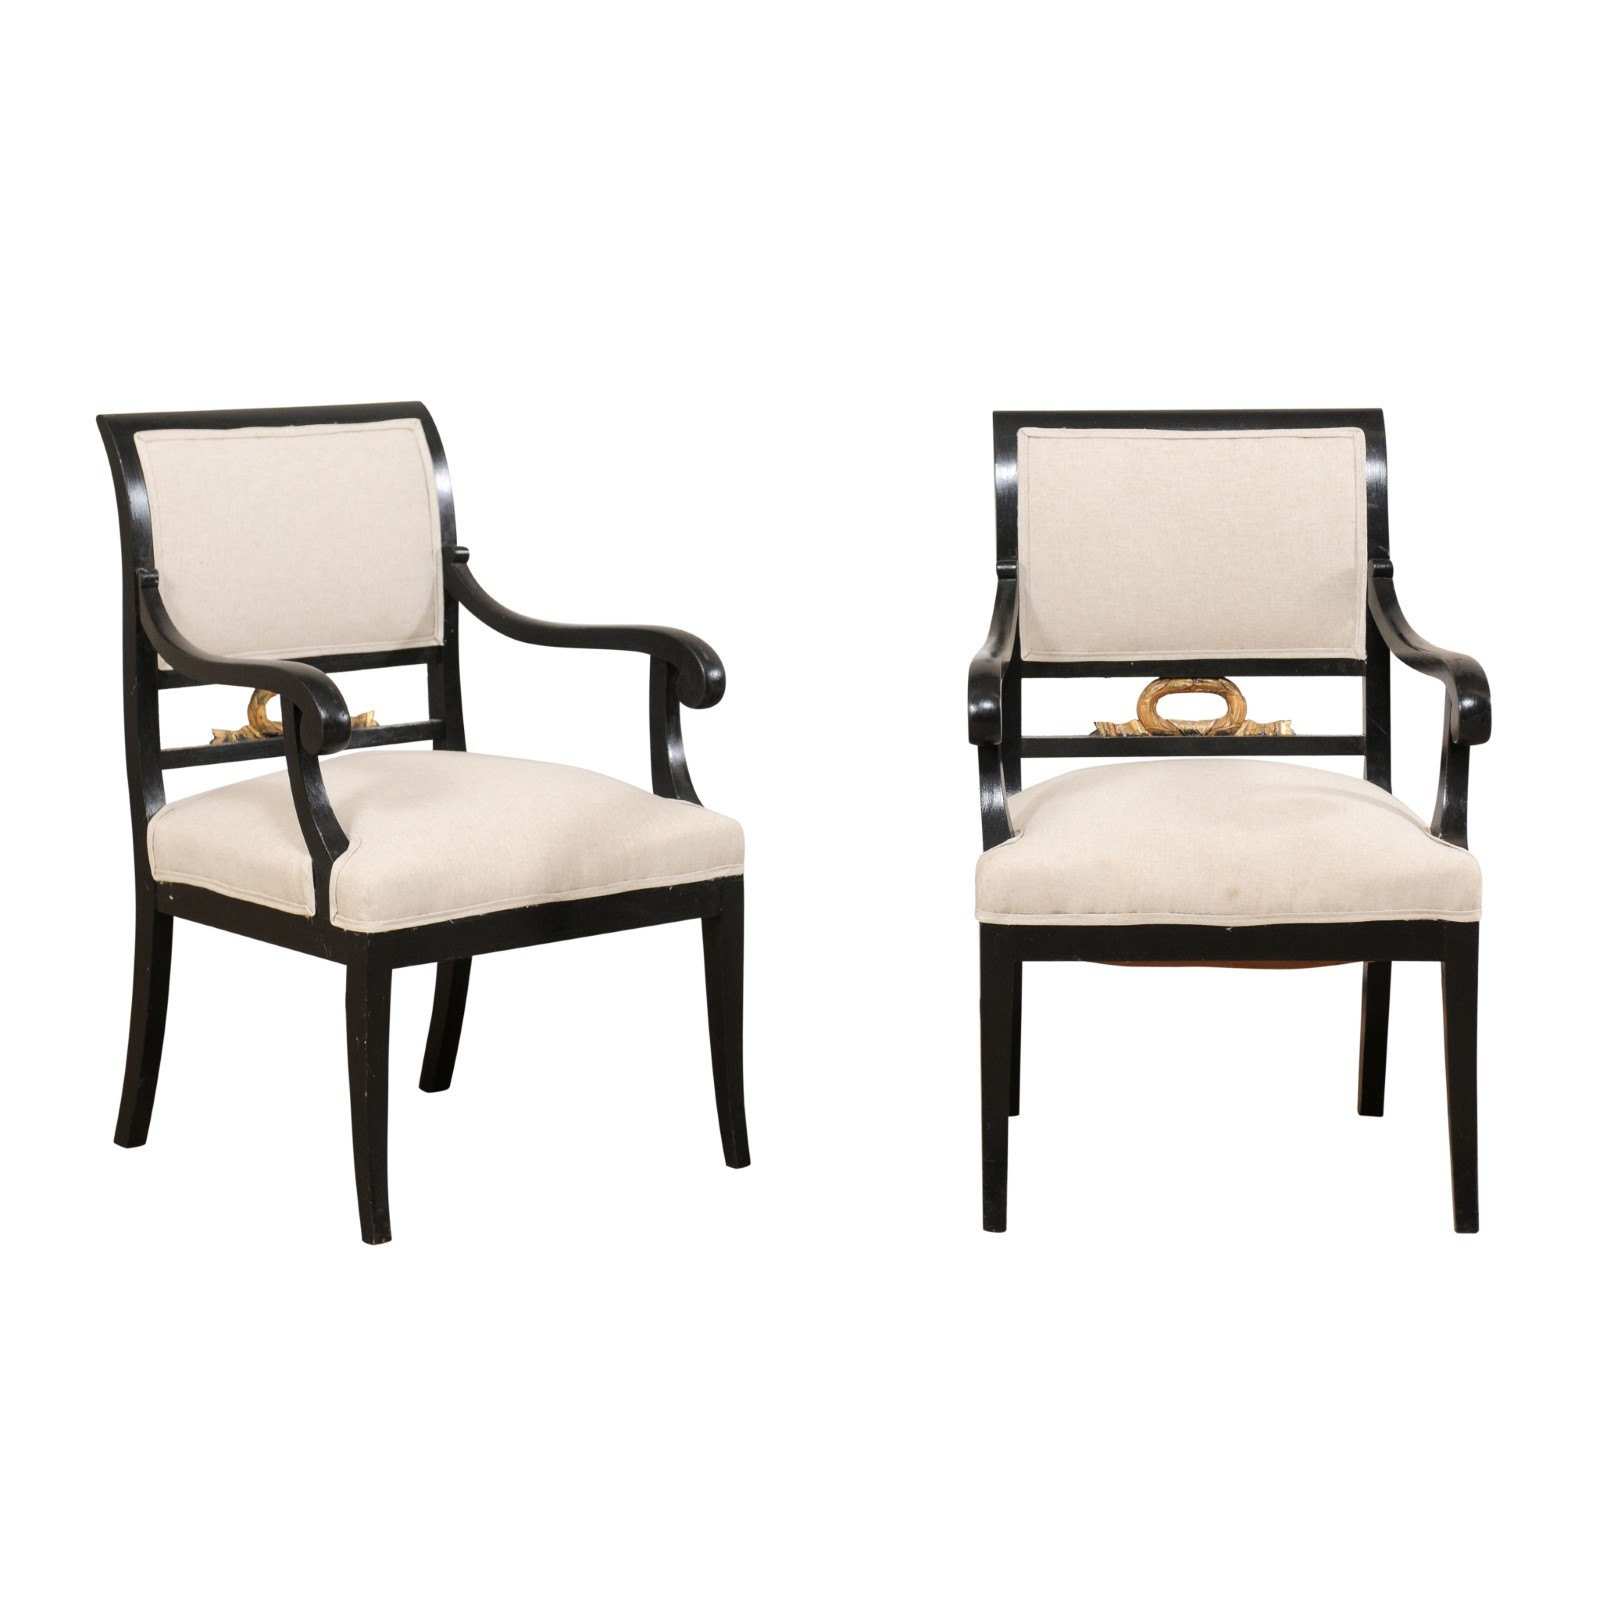 Pair of Swedish Empire Arm Chairs, 19th C.